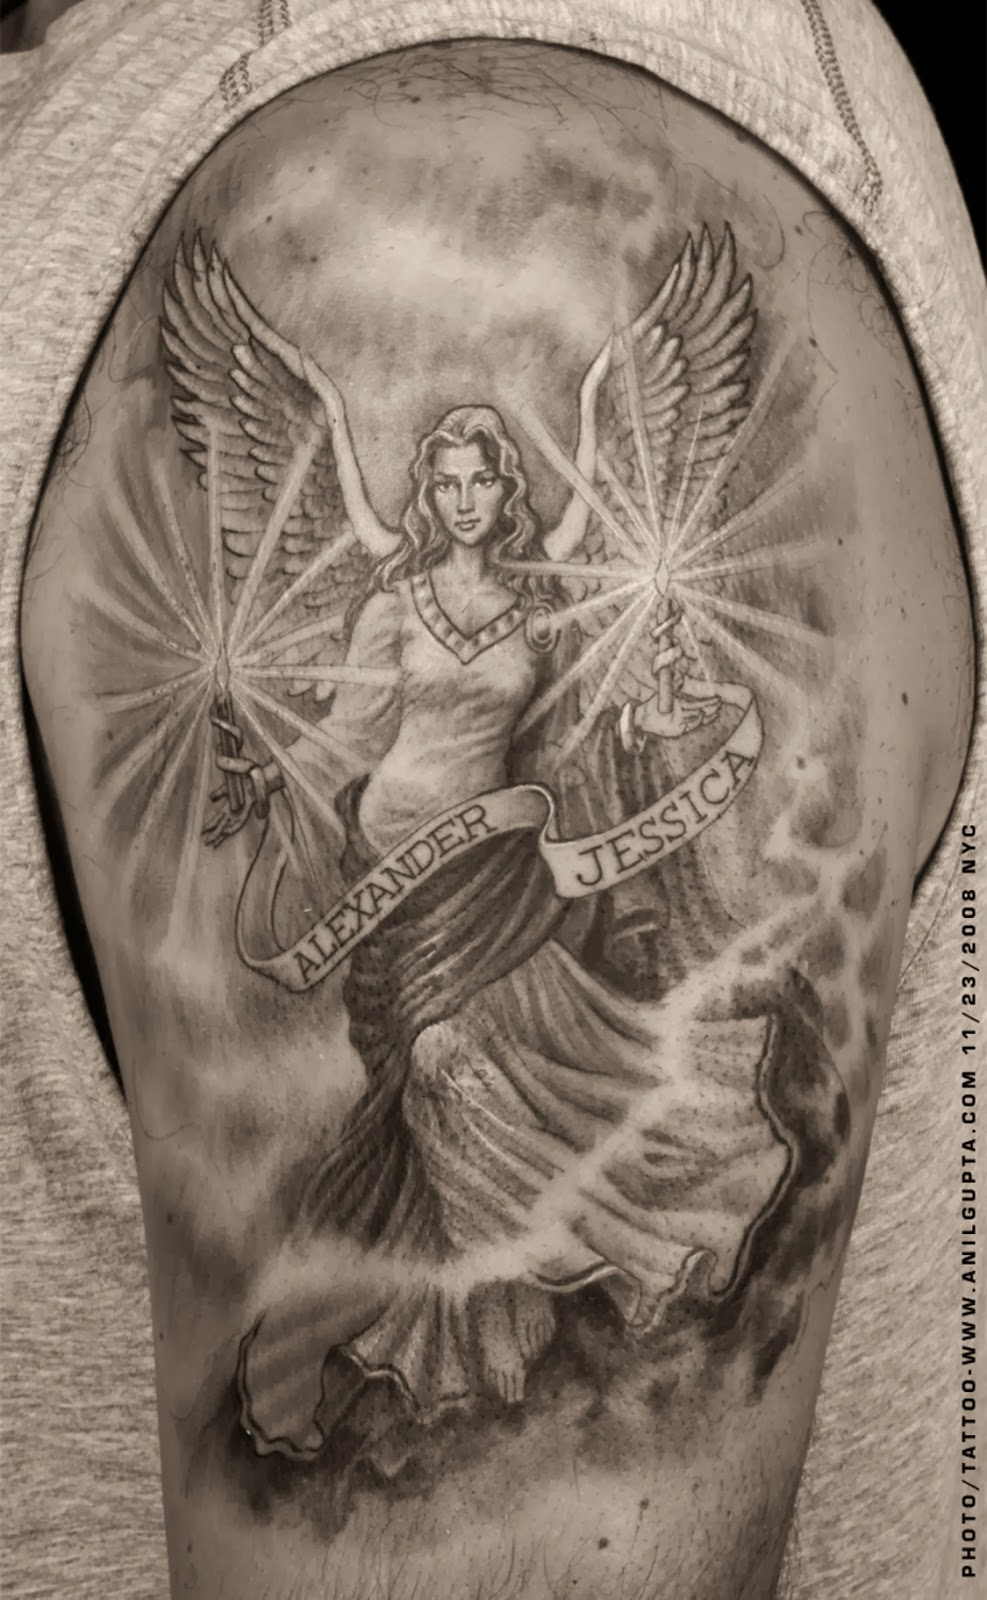 Guardian Angels Cools Tattoos Art | Tattoos Art